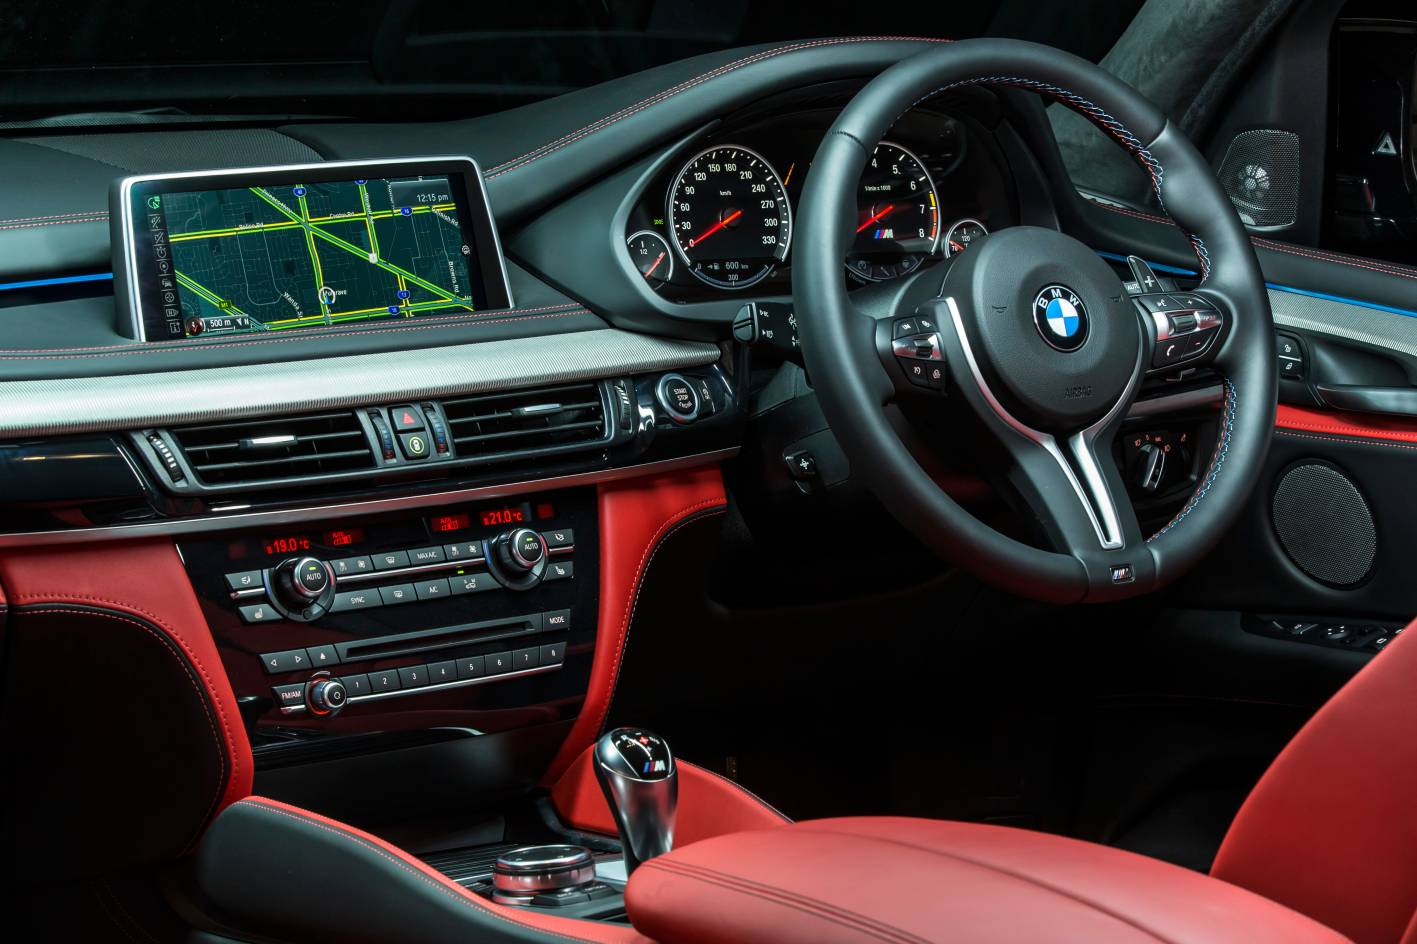 2015 bmw x6 interior car interior design for Bmw x5 interior